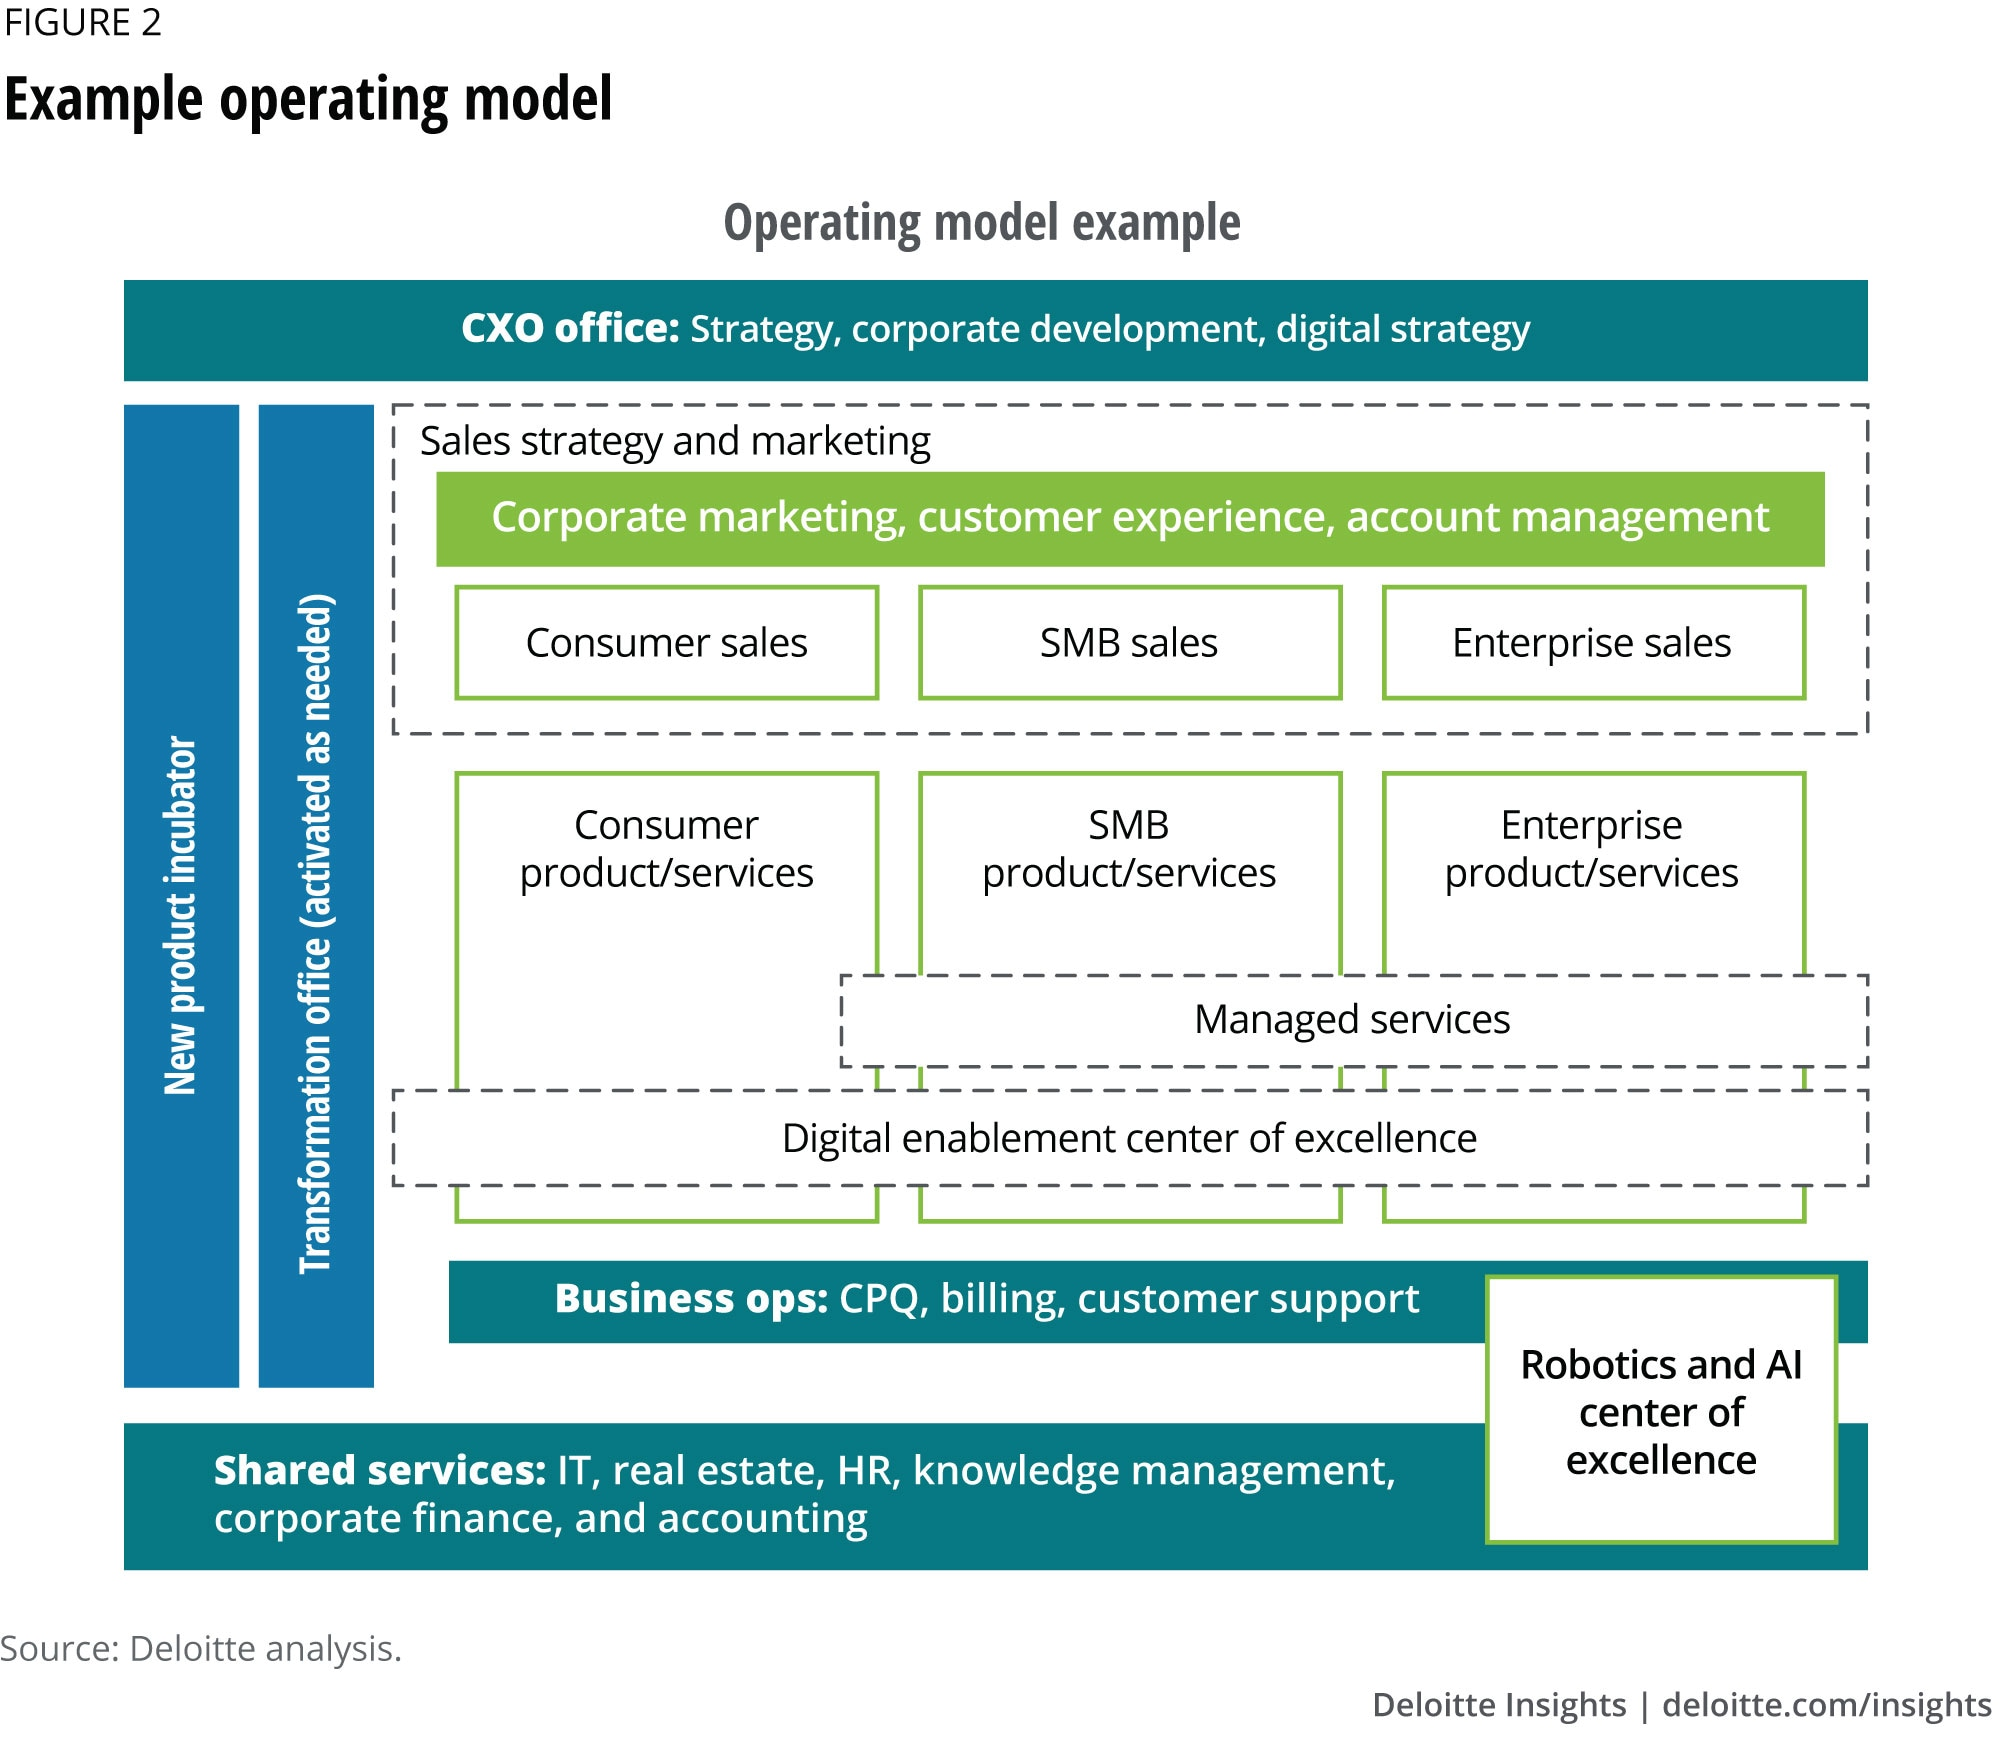 Example operating model